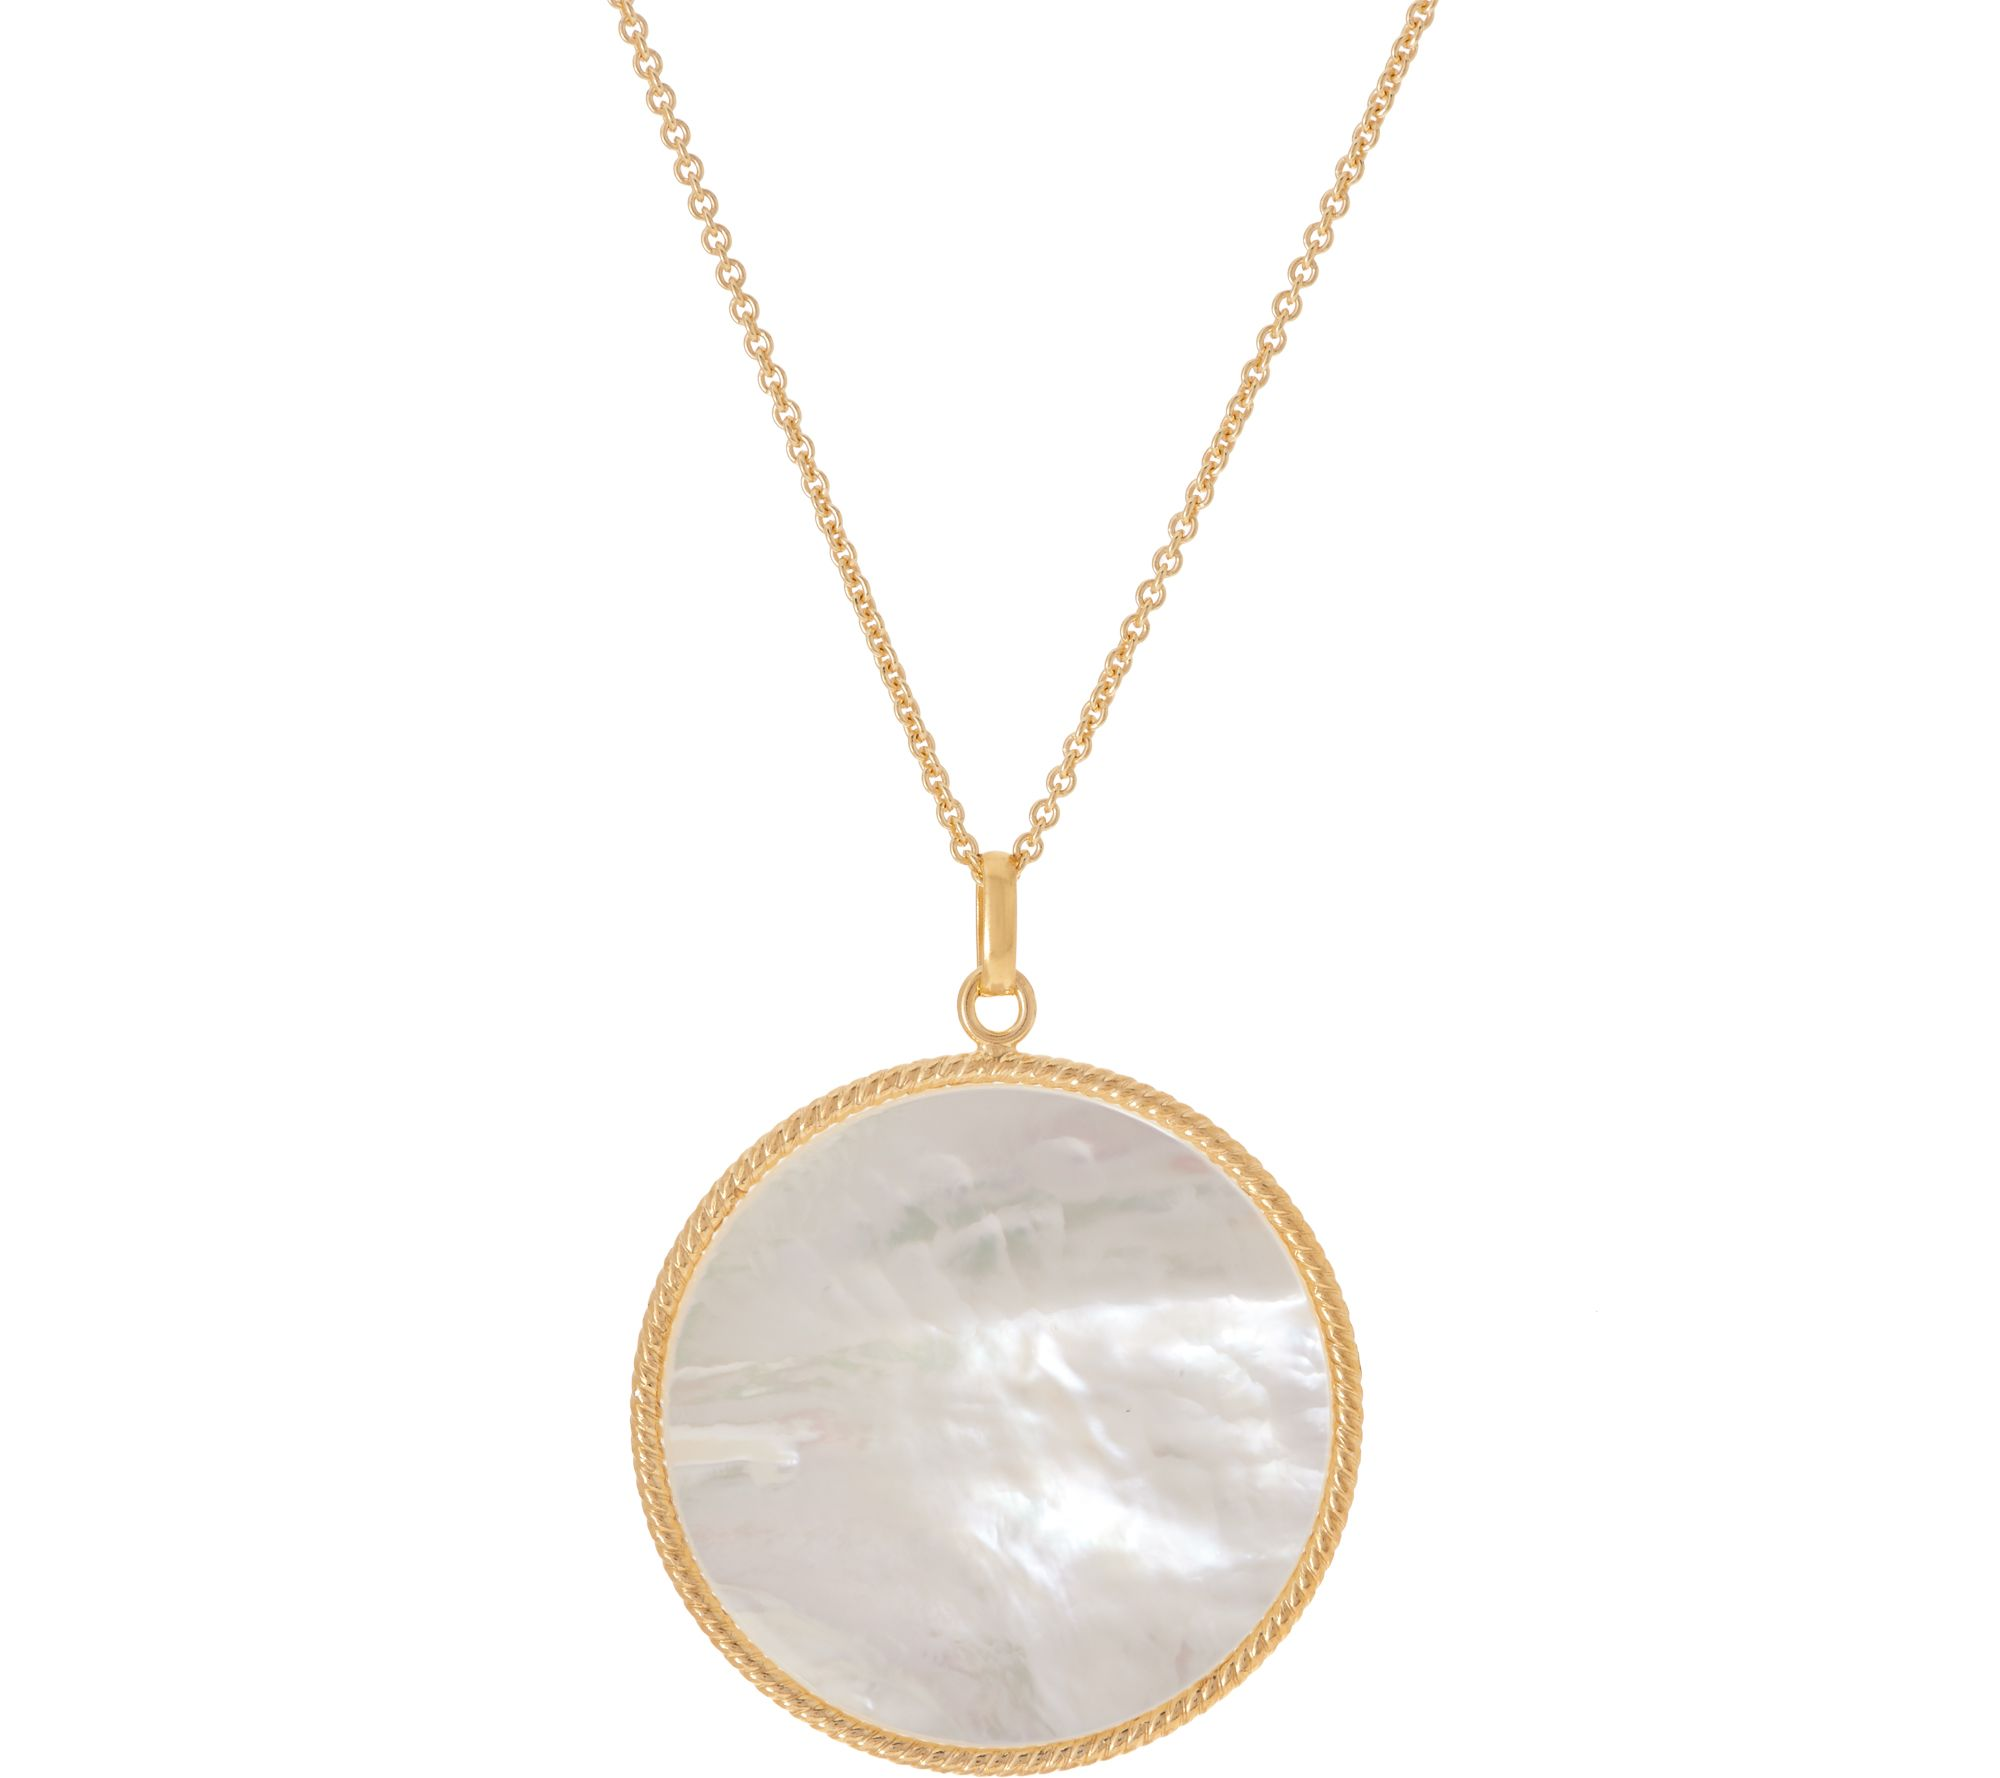 58991a4951d6b Honora White Mother-of-Pearl Pendant w/ 30